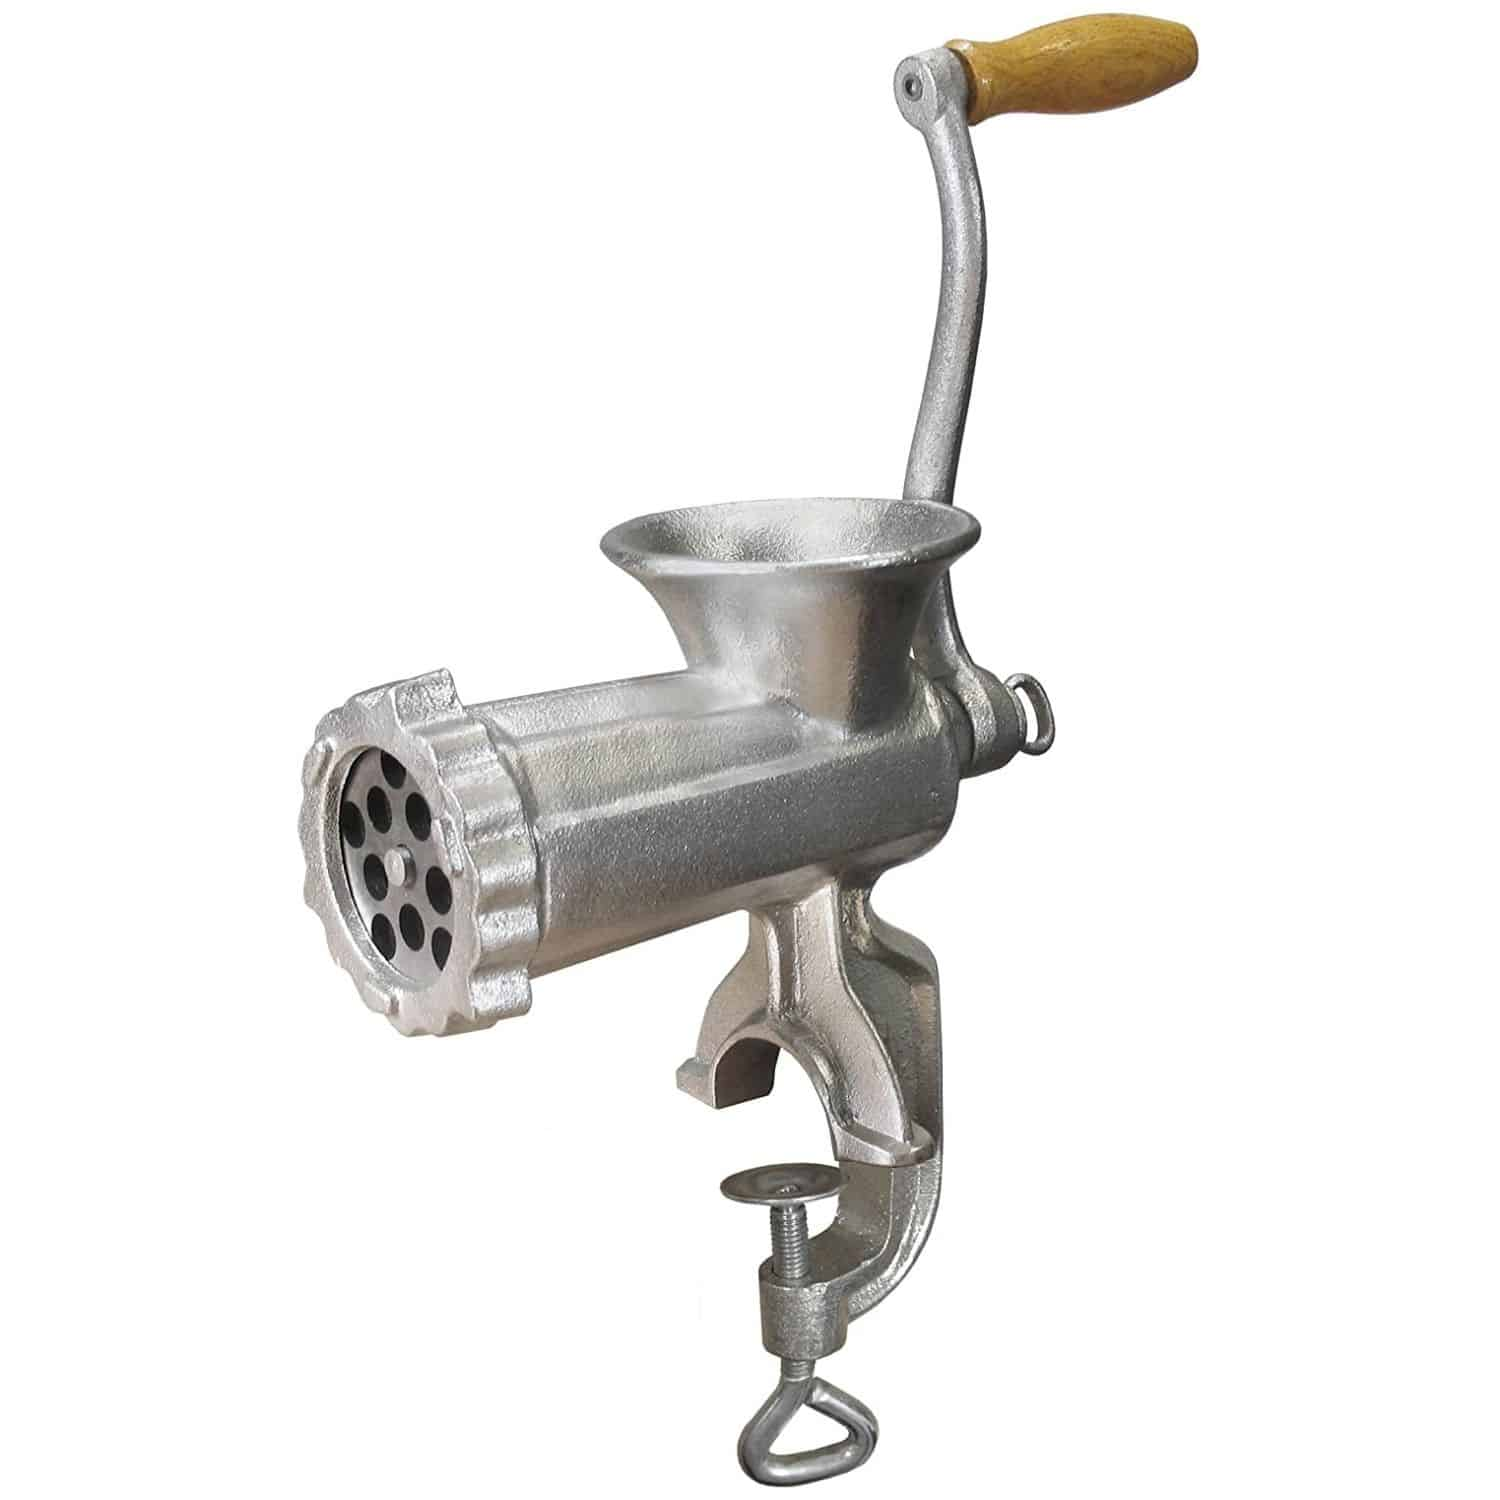 Weston #10 Manual Tinned Meat Grinder & Sausage Stuffer